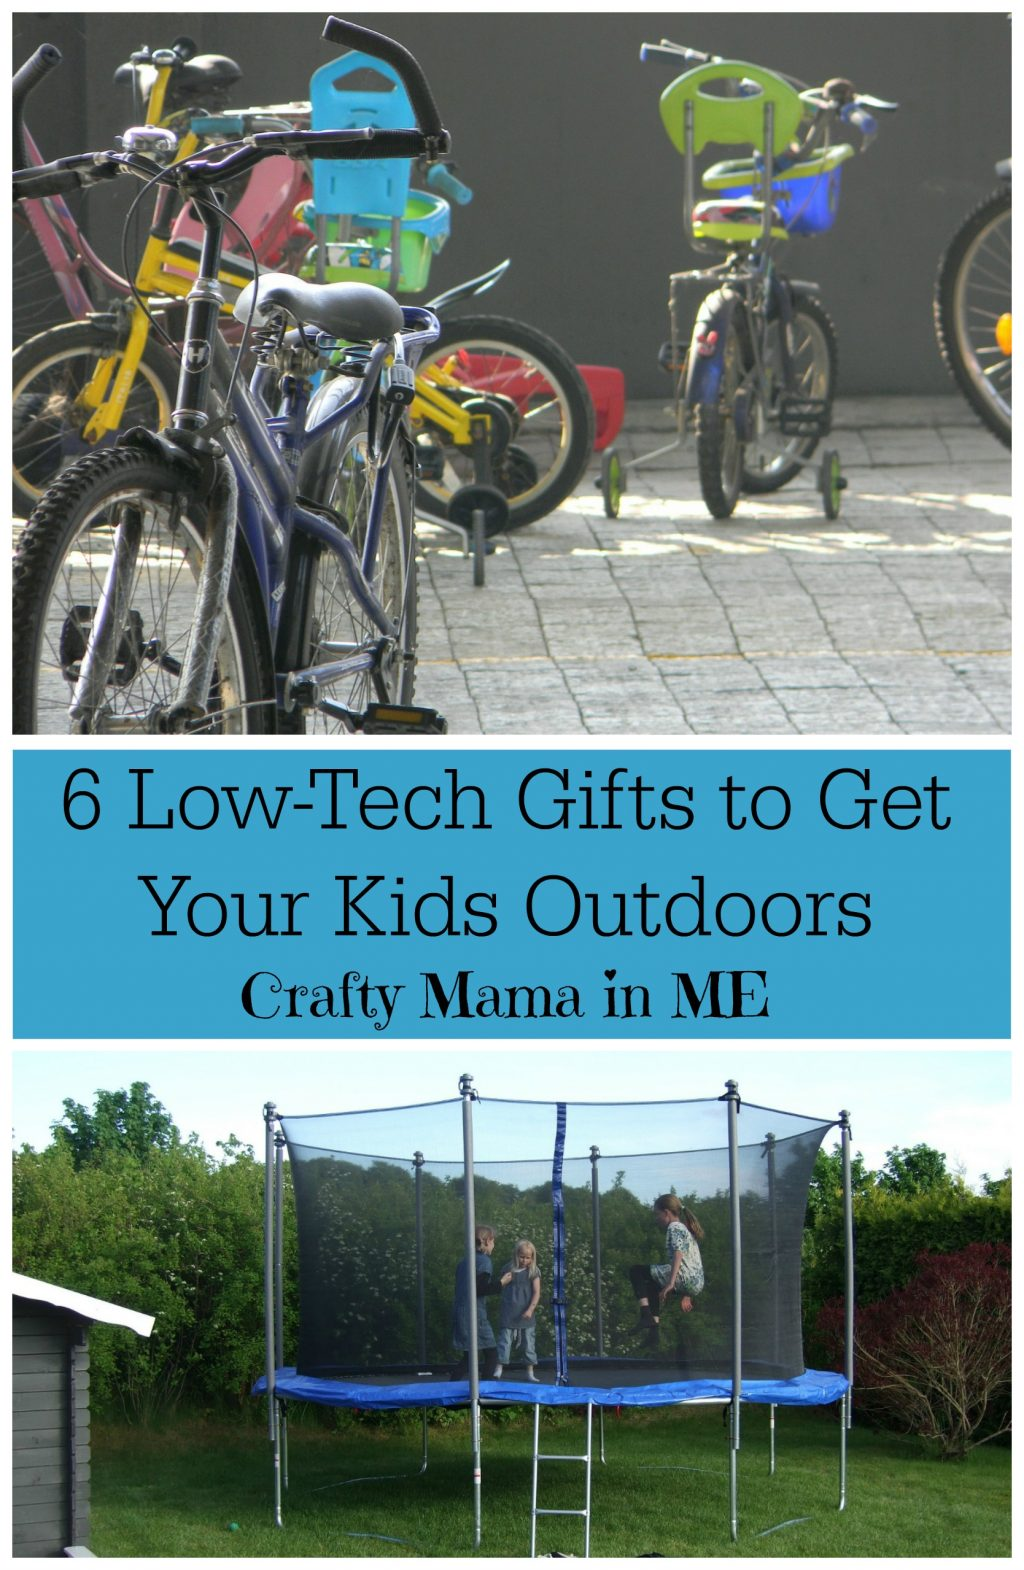 6 Low-Tech Gifts to Get Your Kids Outdoors